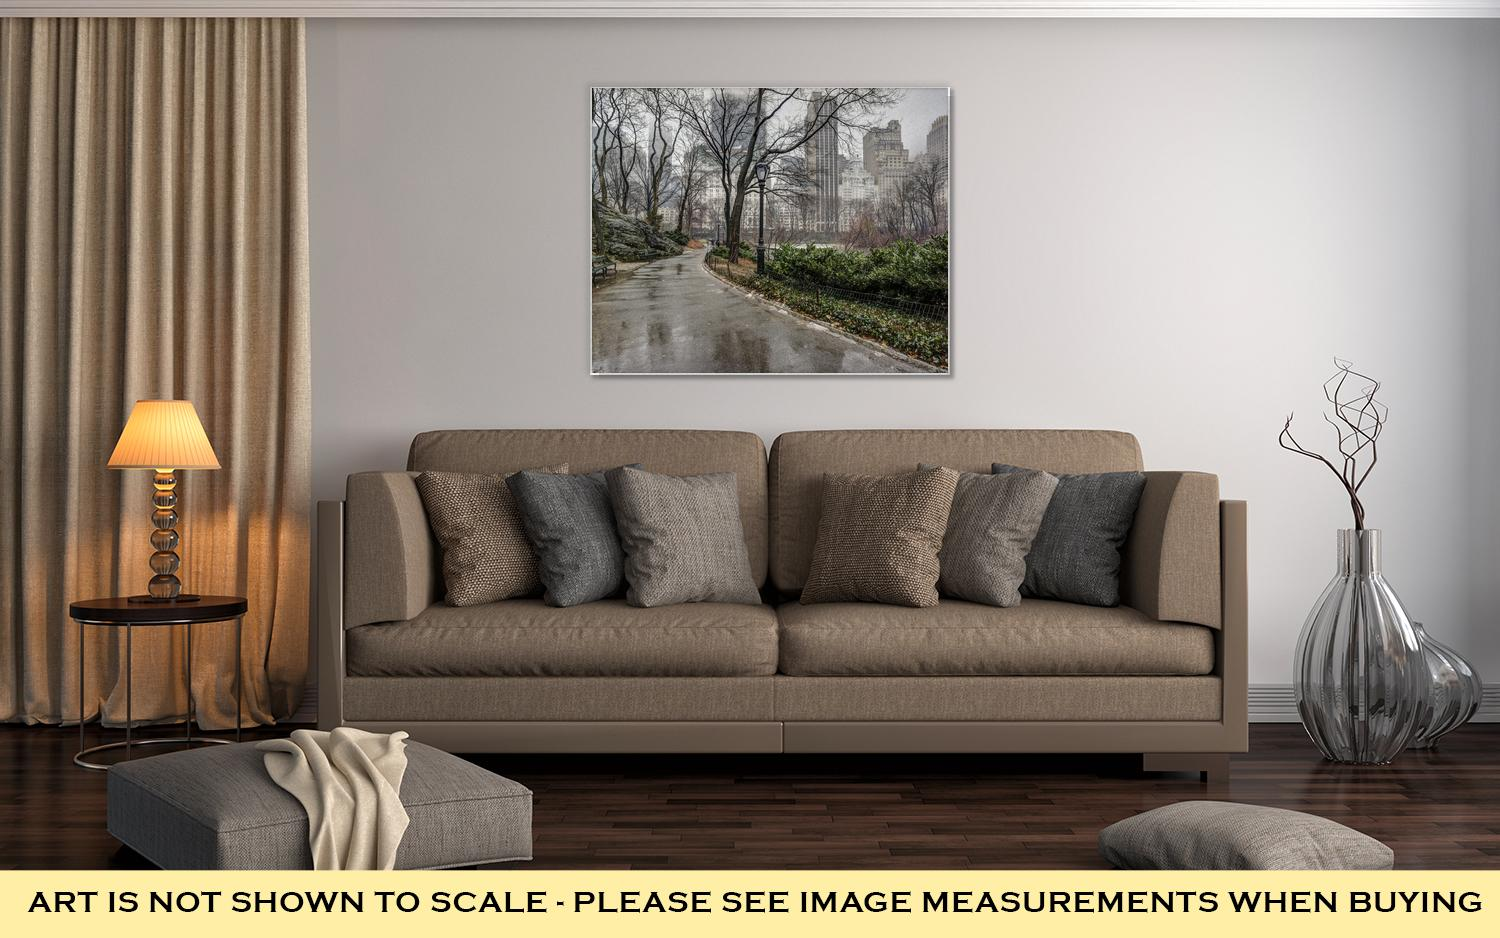 Gallery Wrapped Canvas, Central Park New York City After Rain Storm